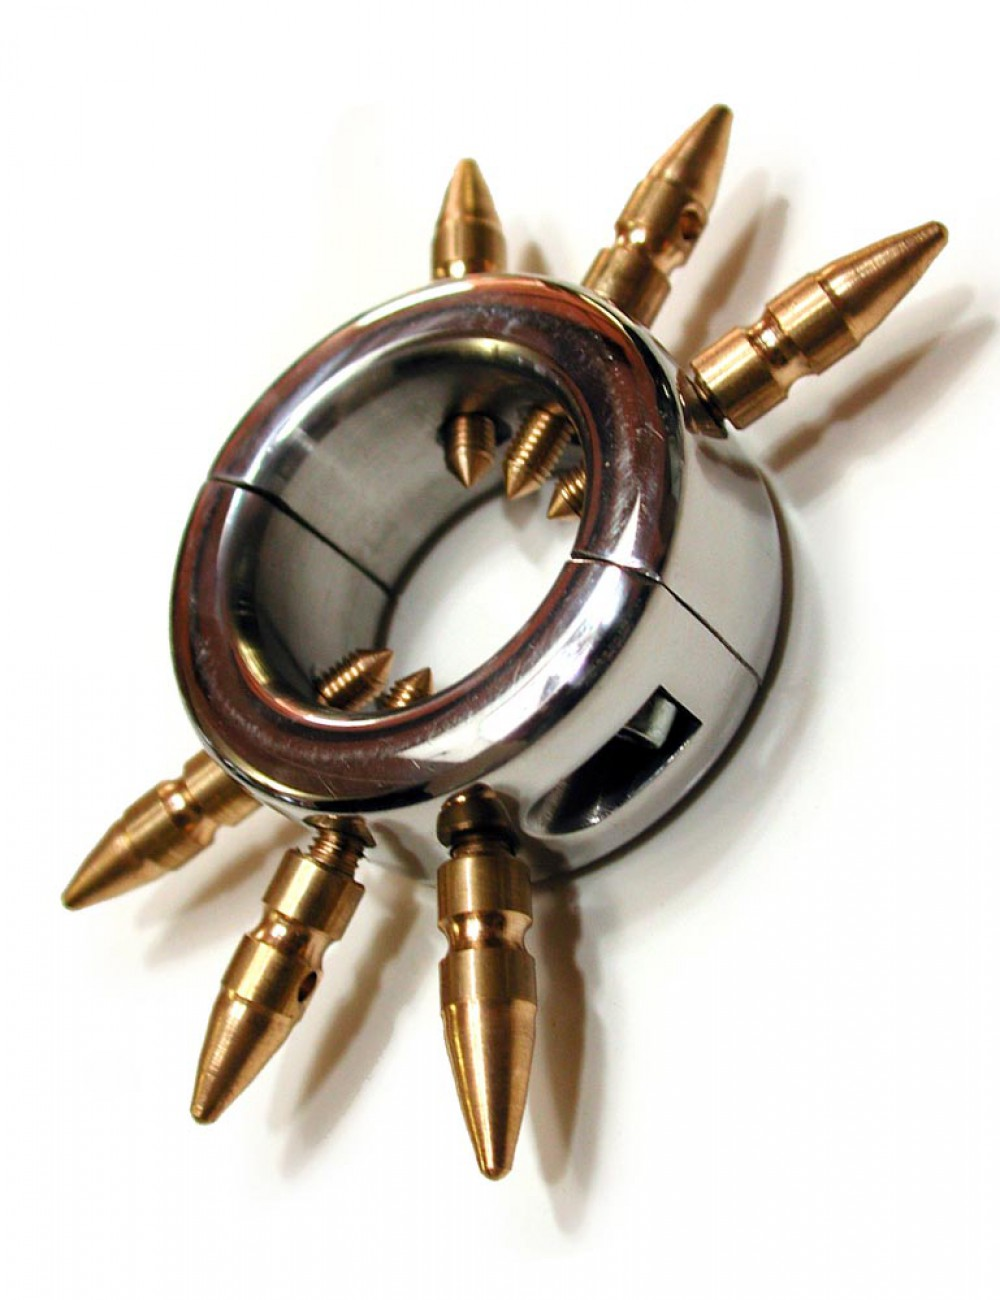 Spiked Ball Stretcher